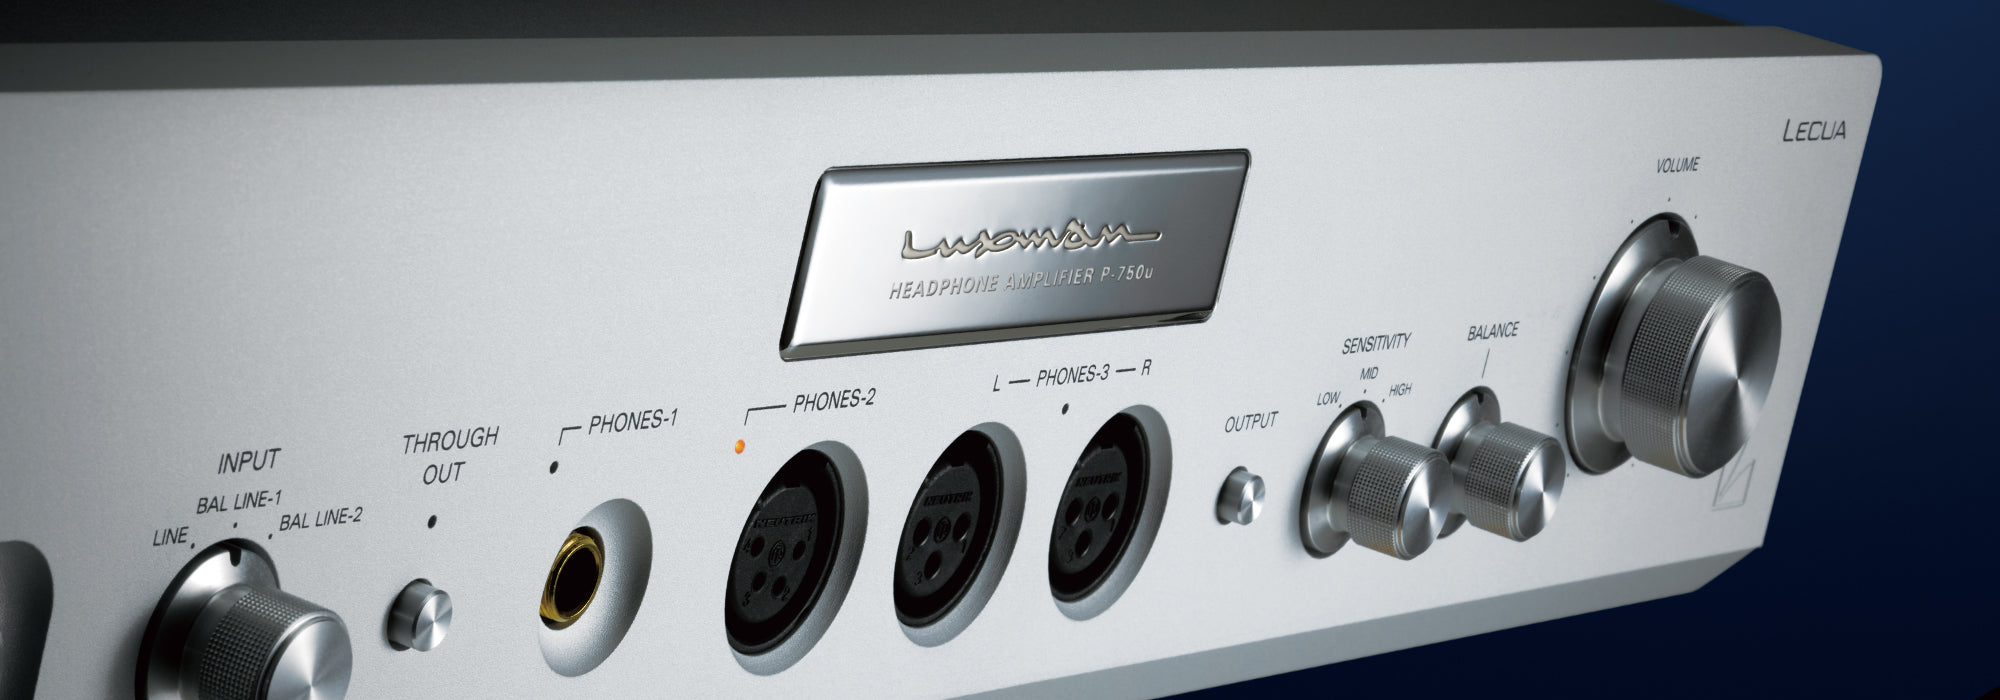 Luxman P-750u Headphone Amplifier